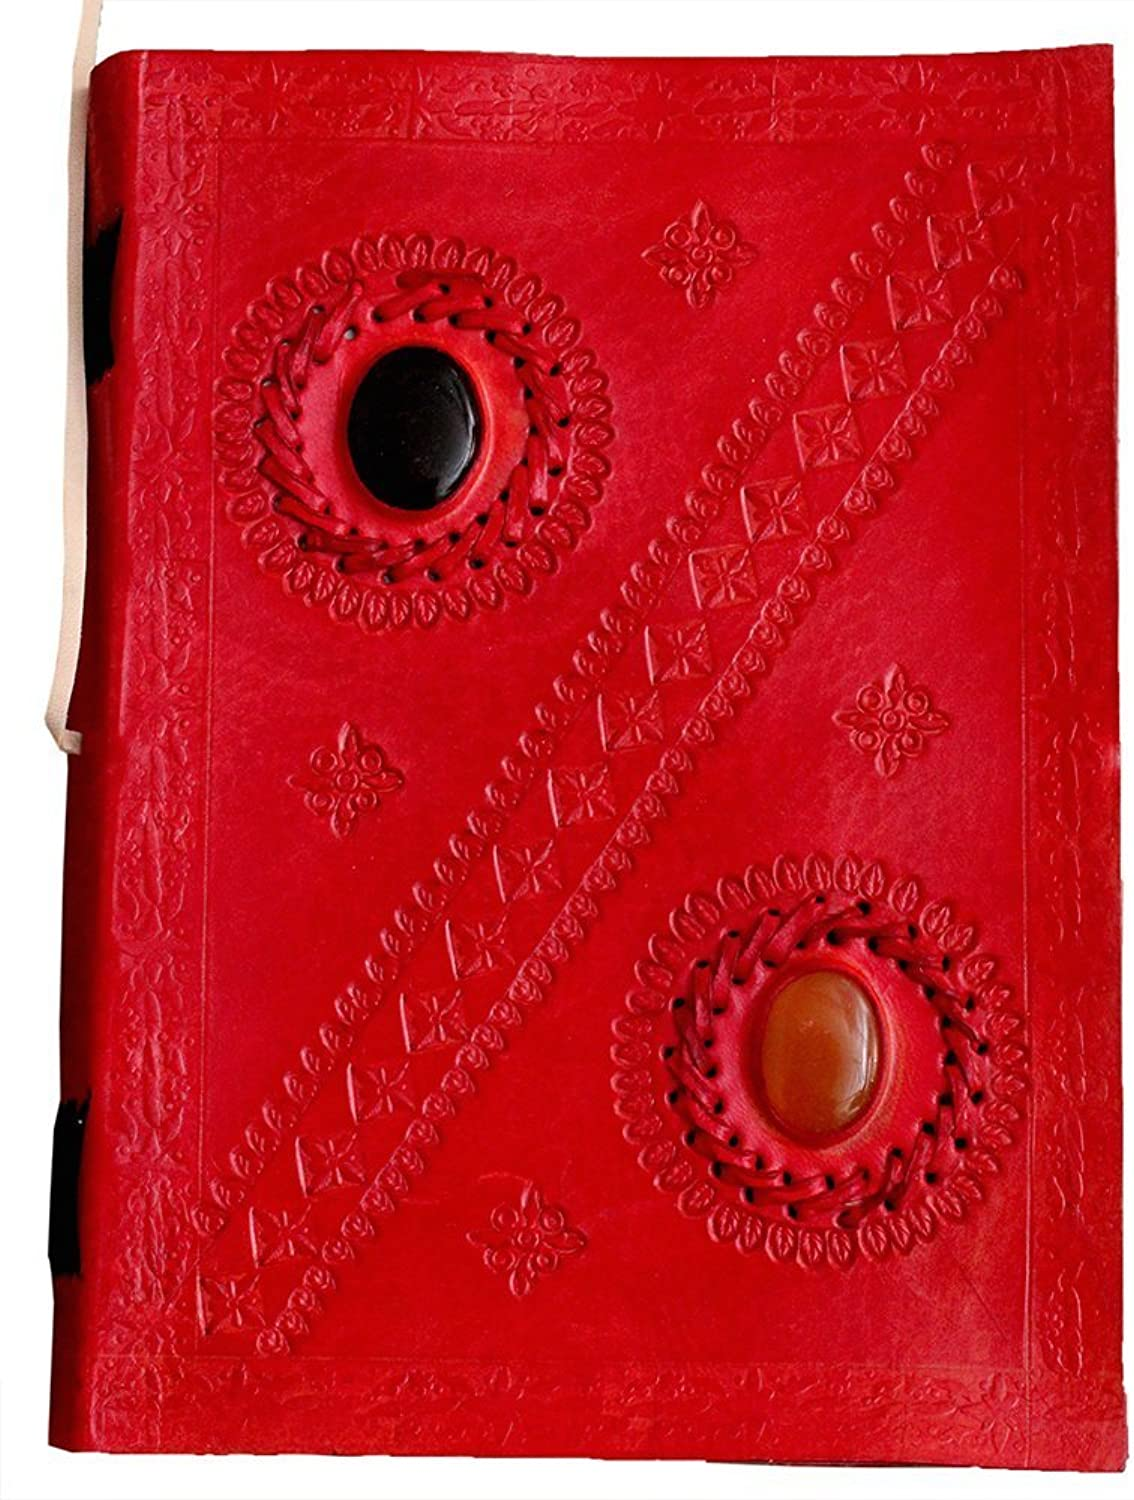 Prastara Leather Writing Journal Notebook Travel Diary Sketchbook Gifts with Unlined Travel Journals to Write